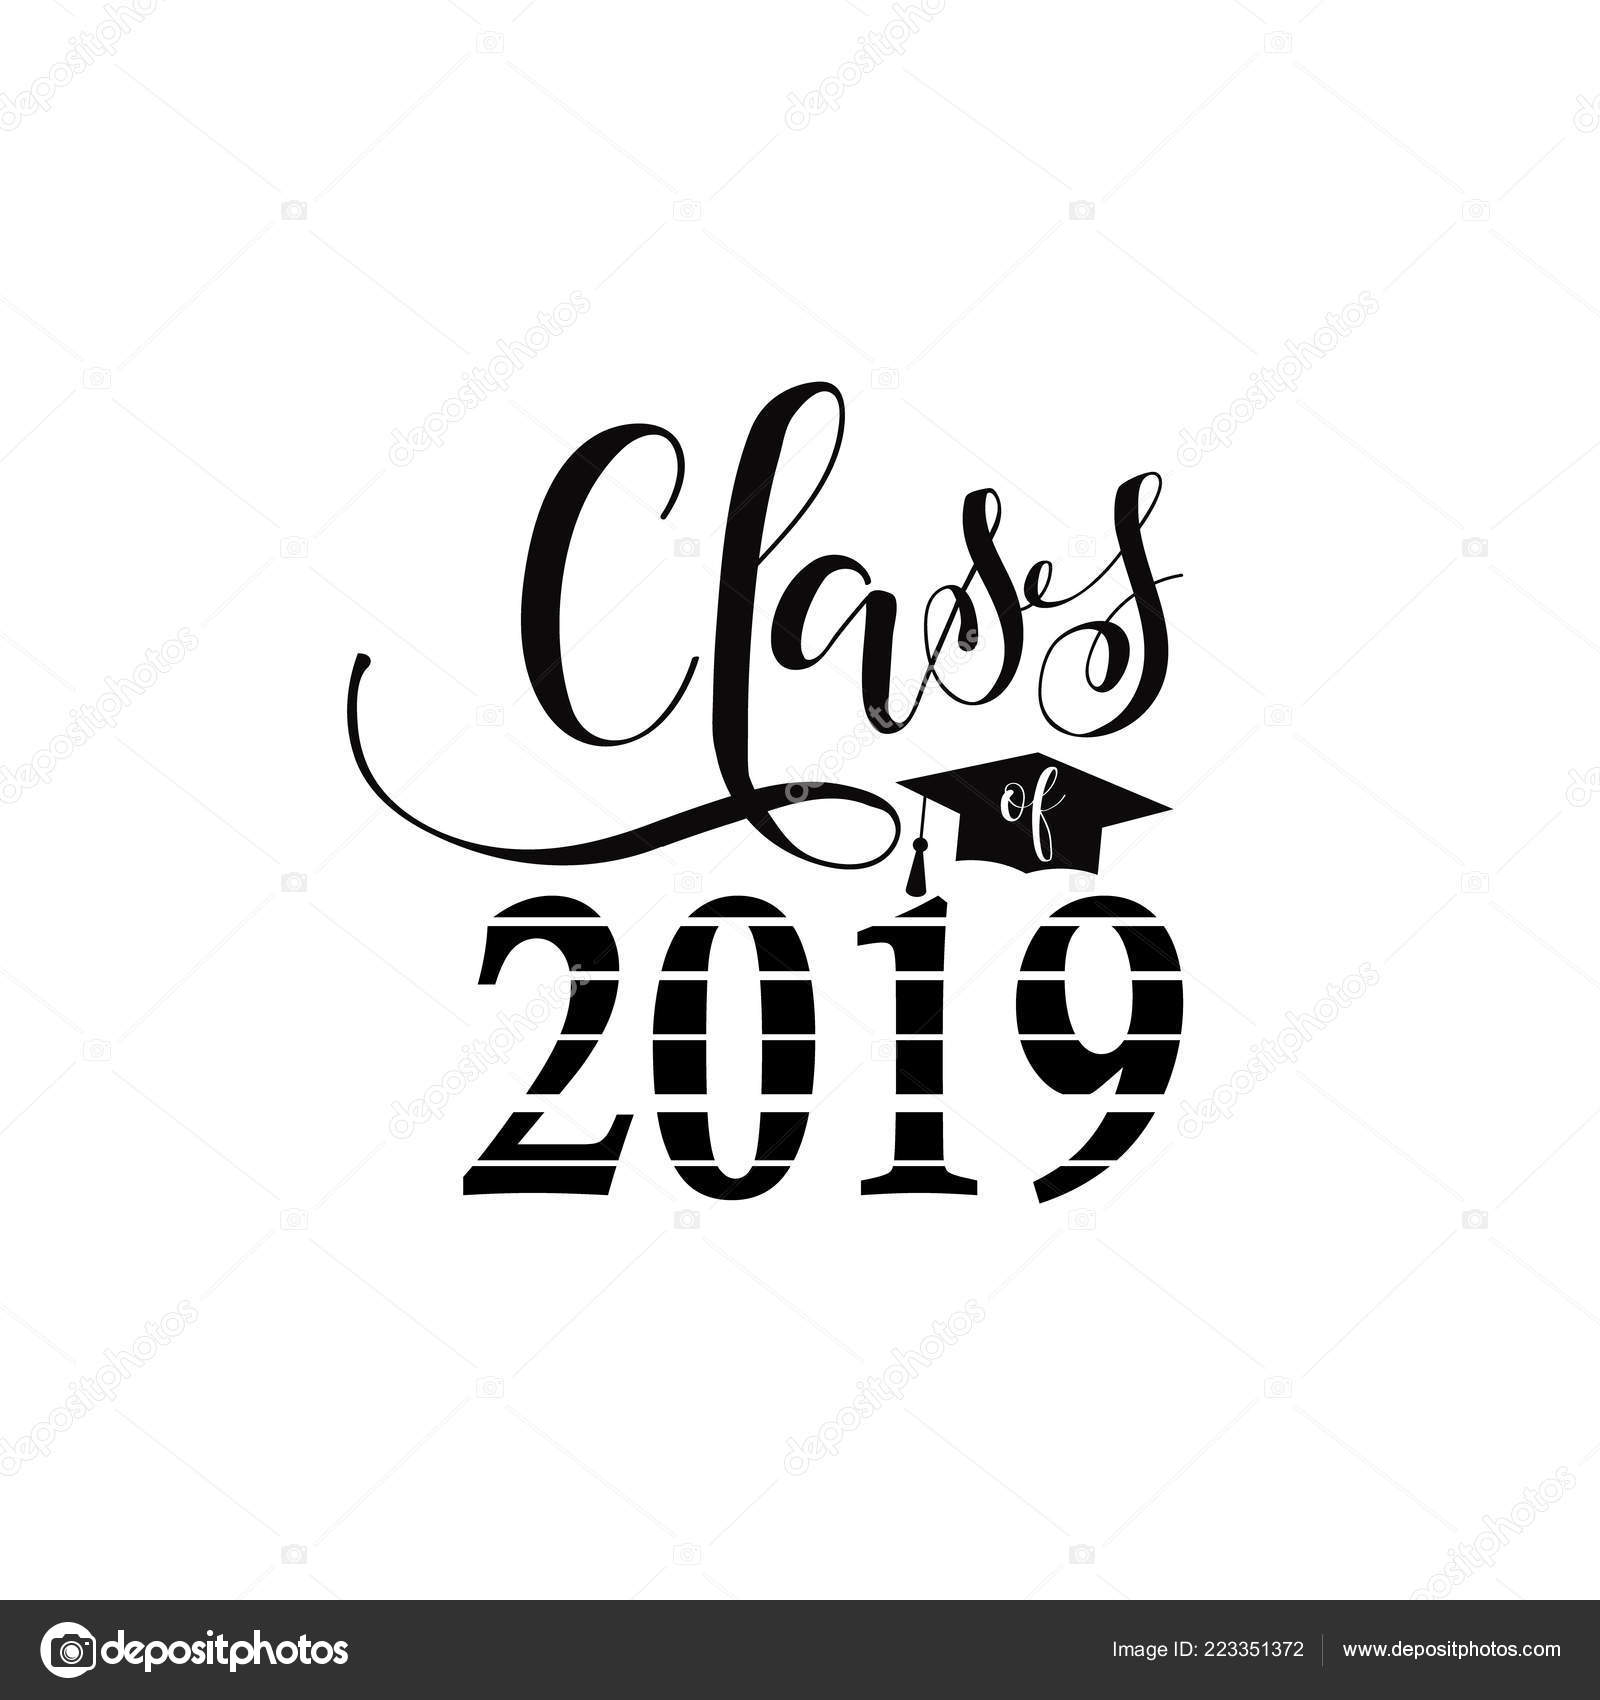 Class 2019 Hand Drawn Lettering Vector Illustration